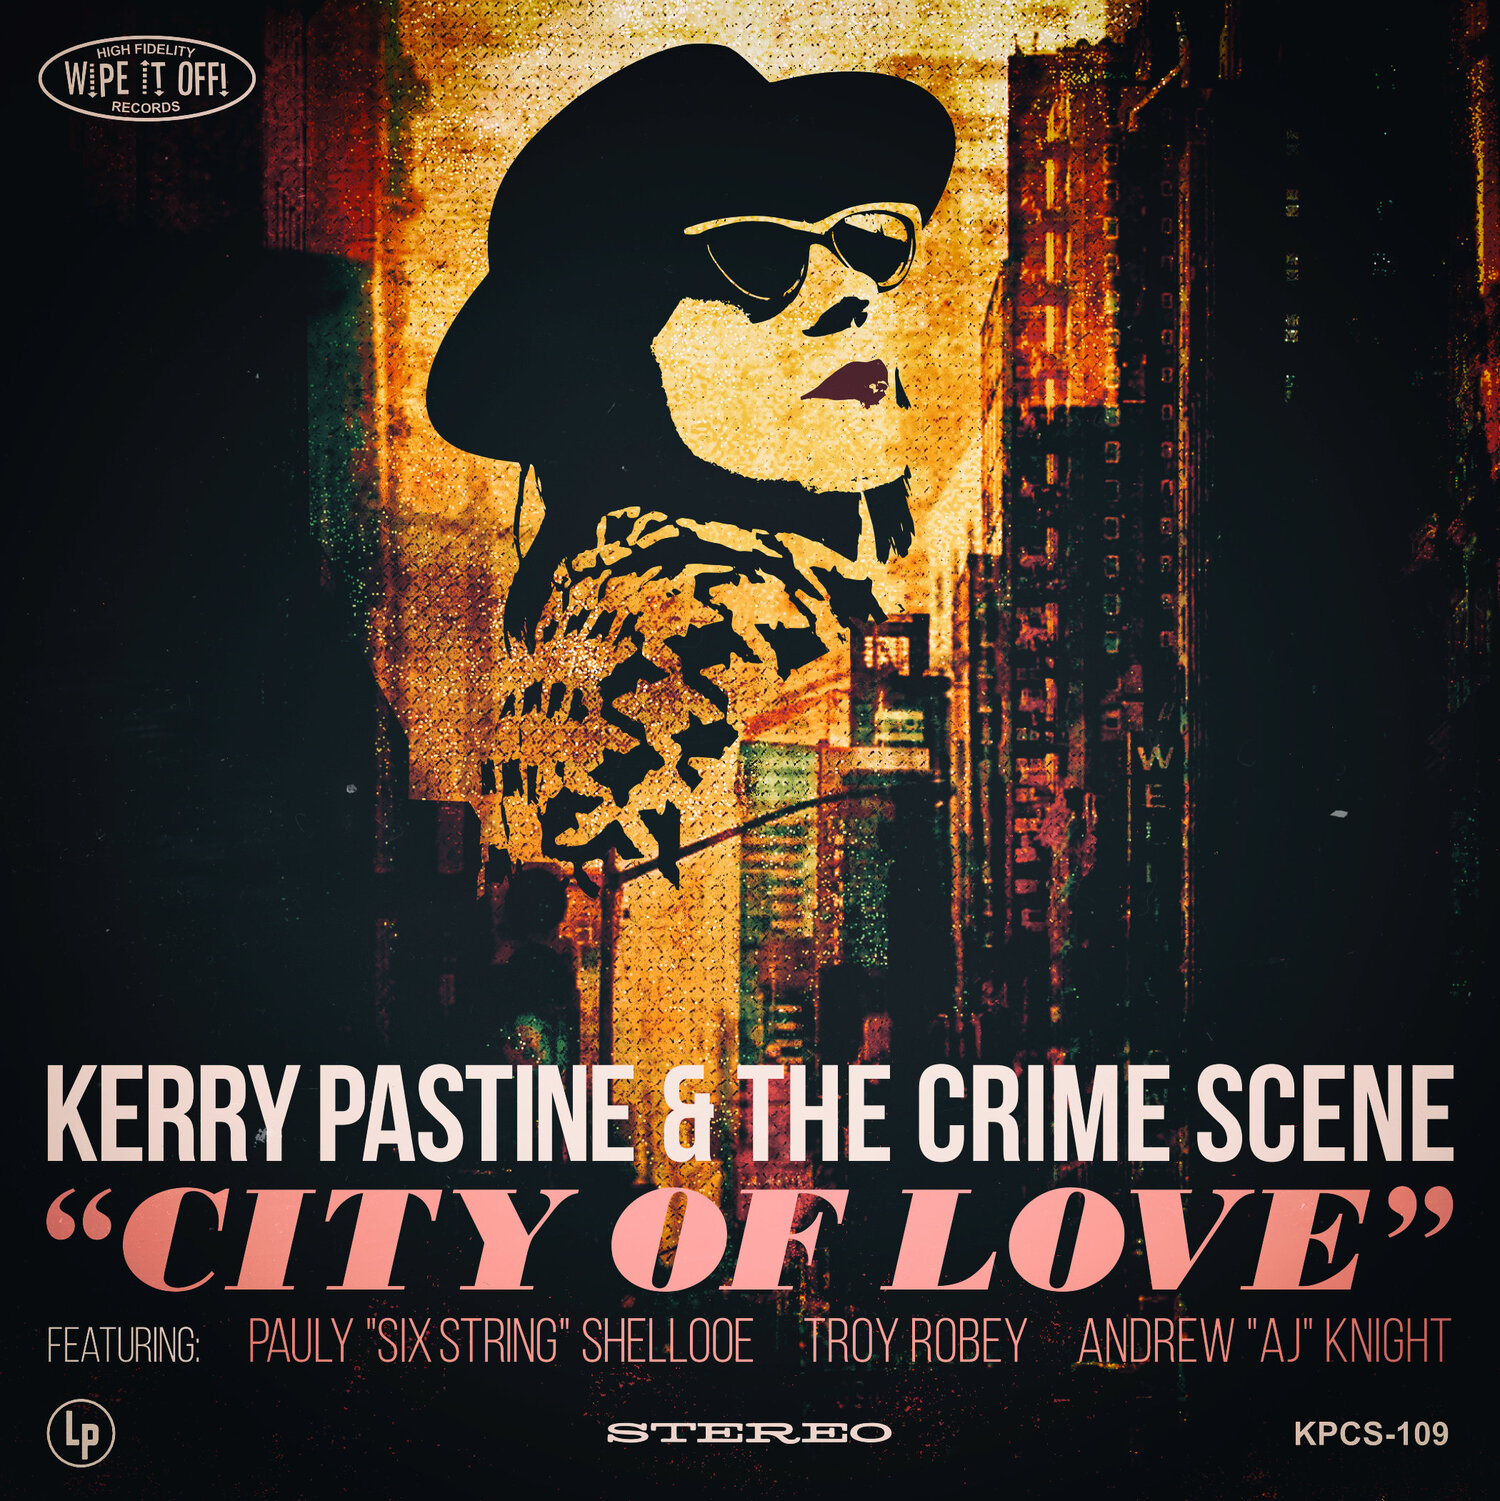 City of Love (9/2019) - The latest release from Kerry Pastine and the Crime Scene starts with her vintage roots and takes her sound boldly into the future. Pastine explores themes of growth, joy and loss. Her songwriting and song choice shows maturity and brings additional depth to the blues party that is the Crime Scene.